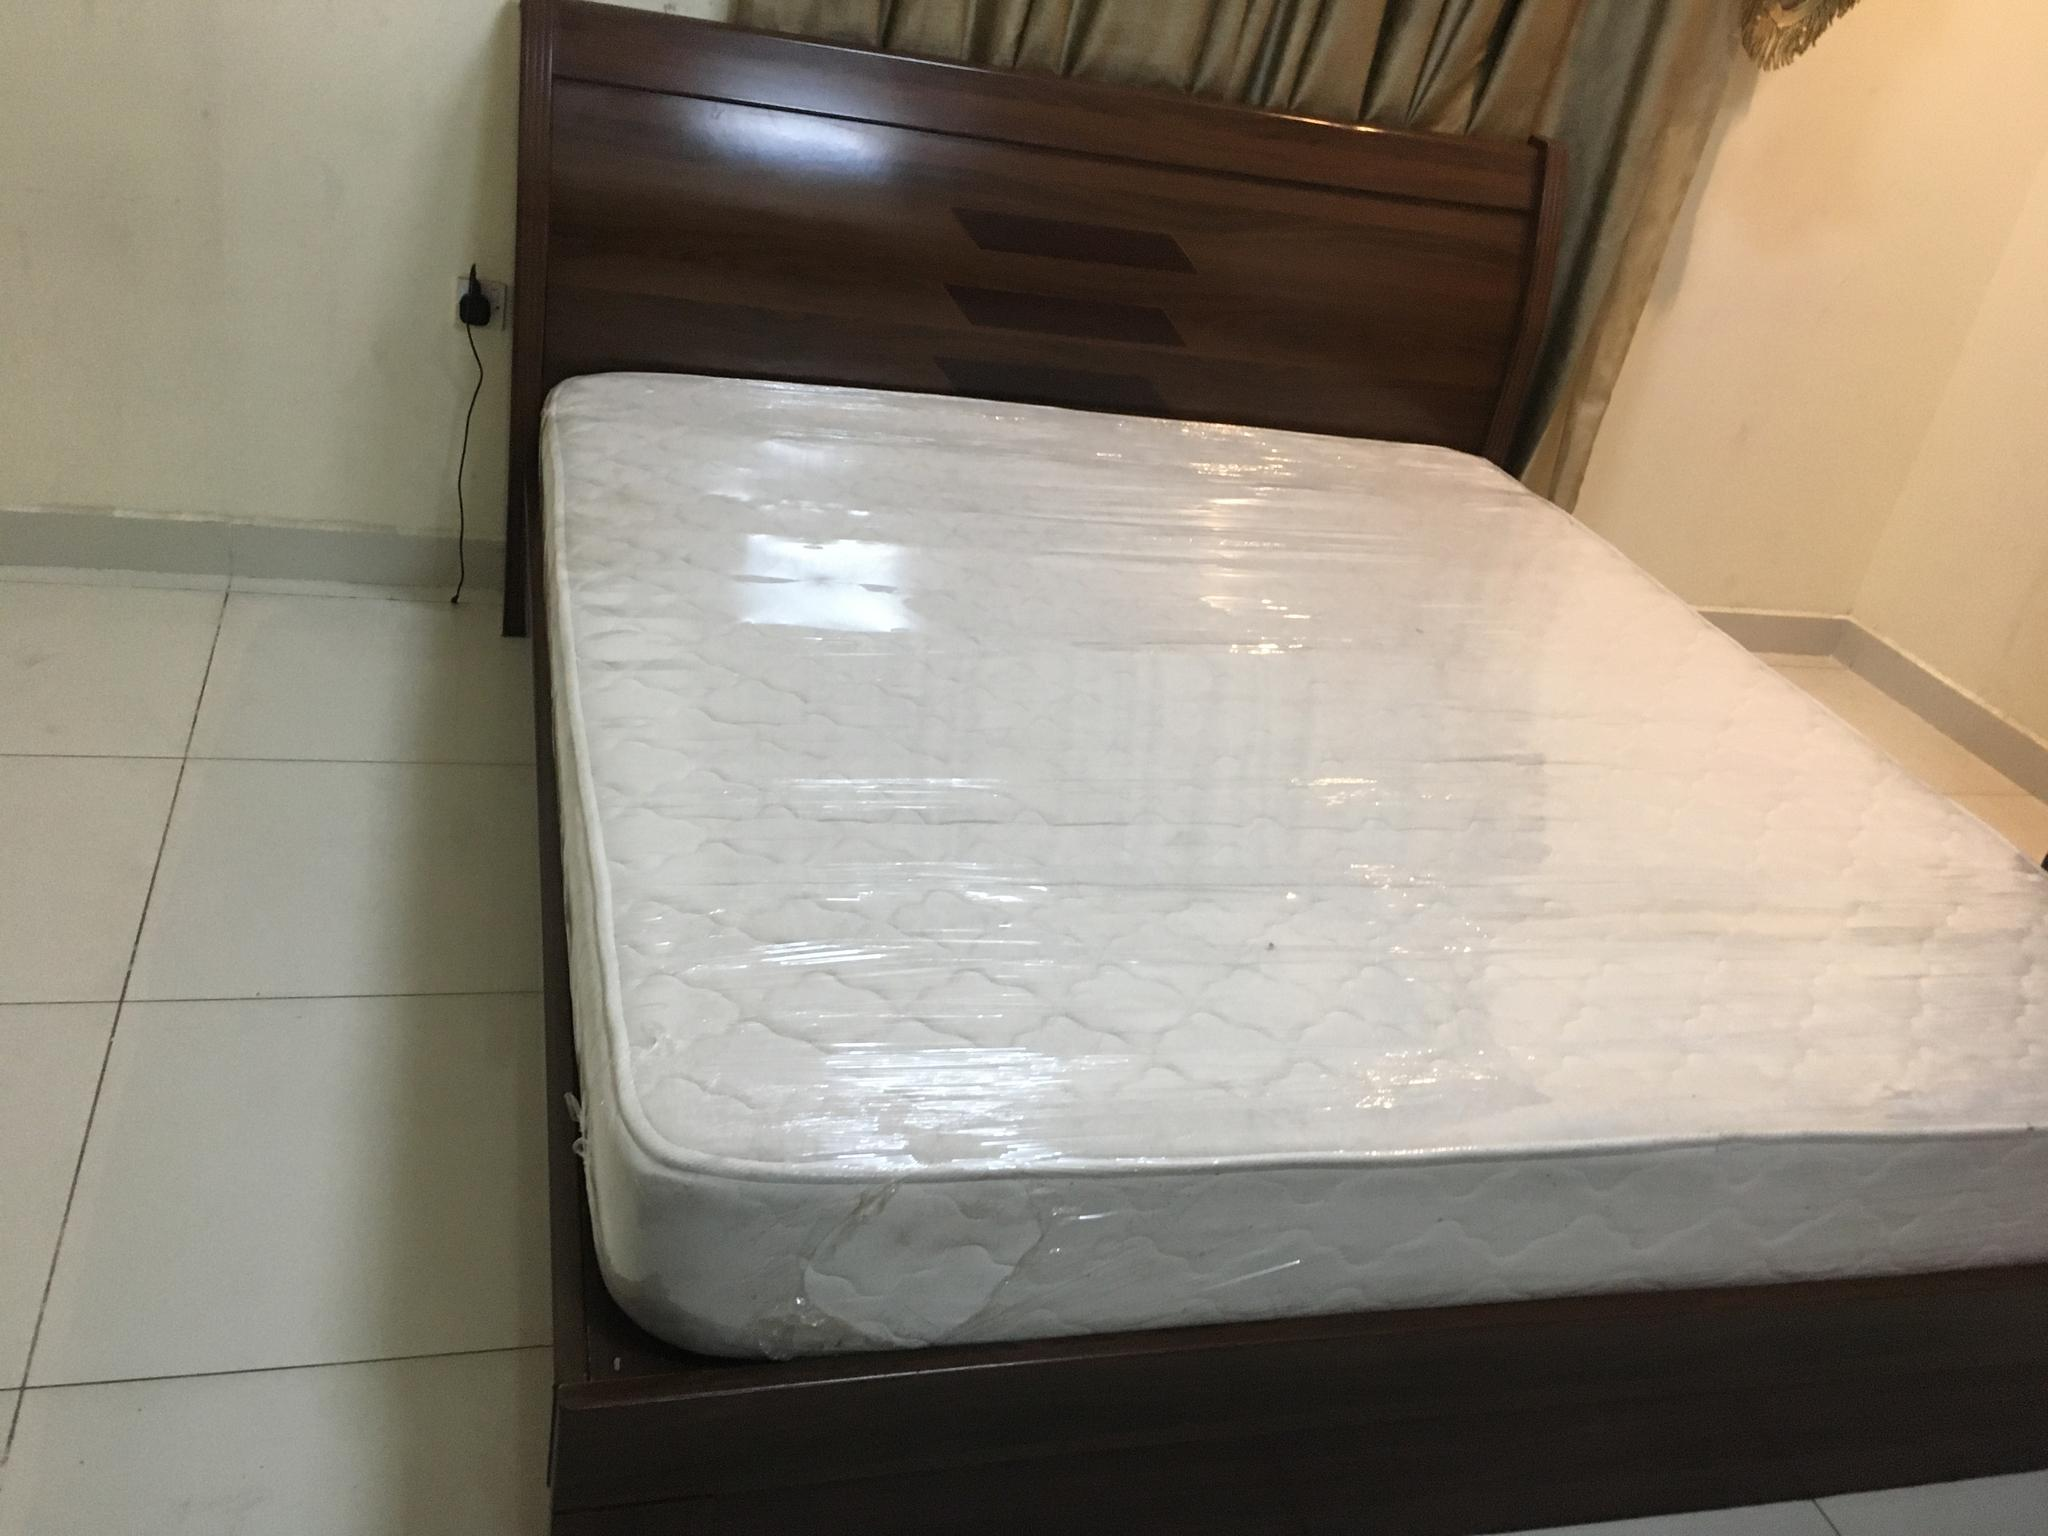 House Items for sale (Used)